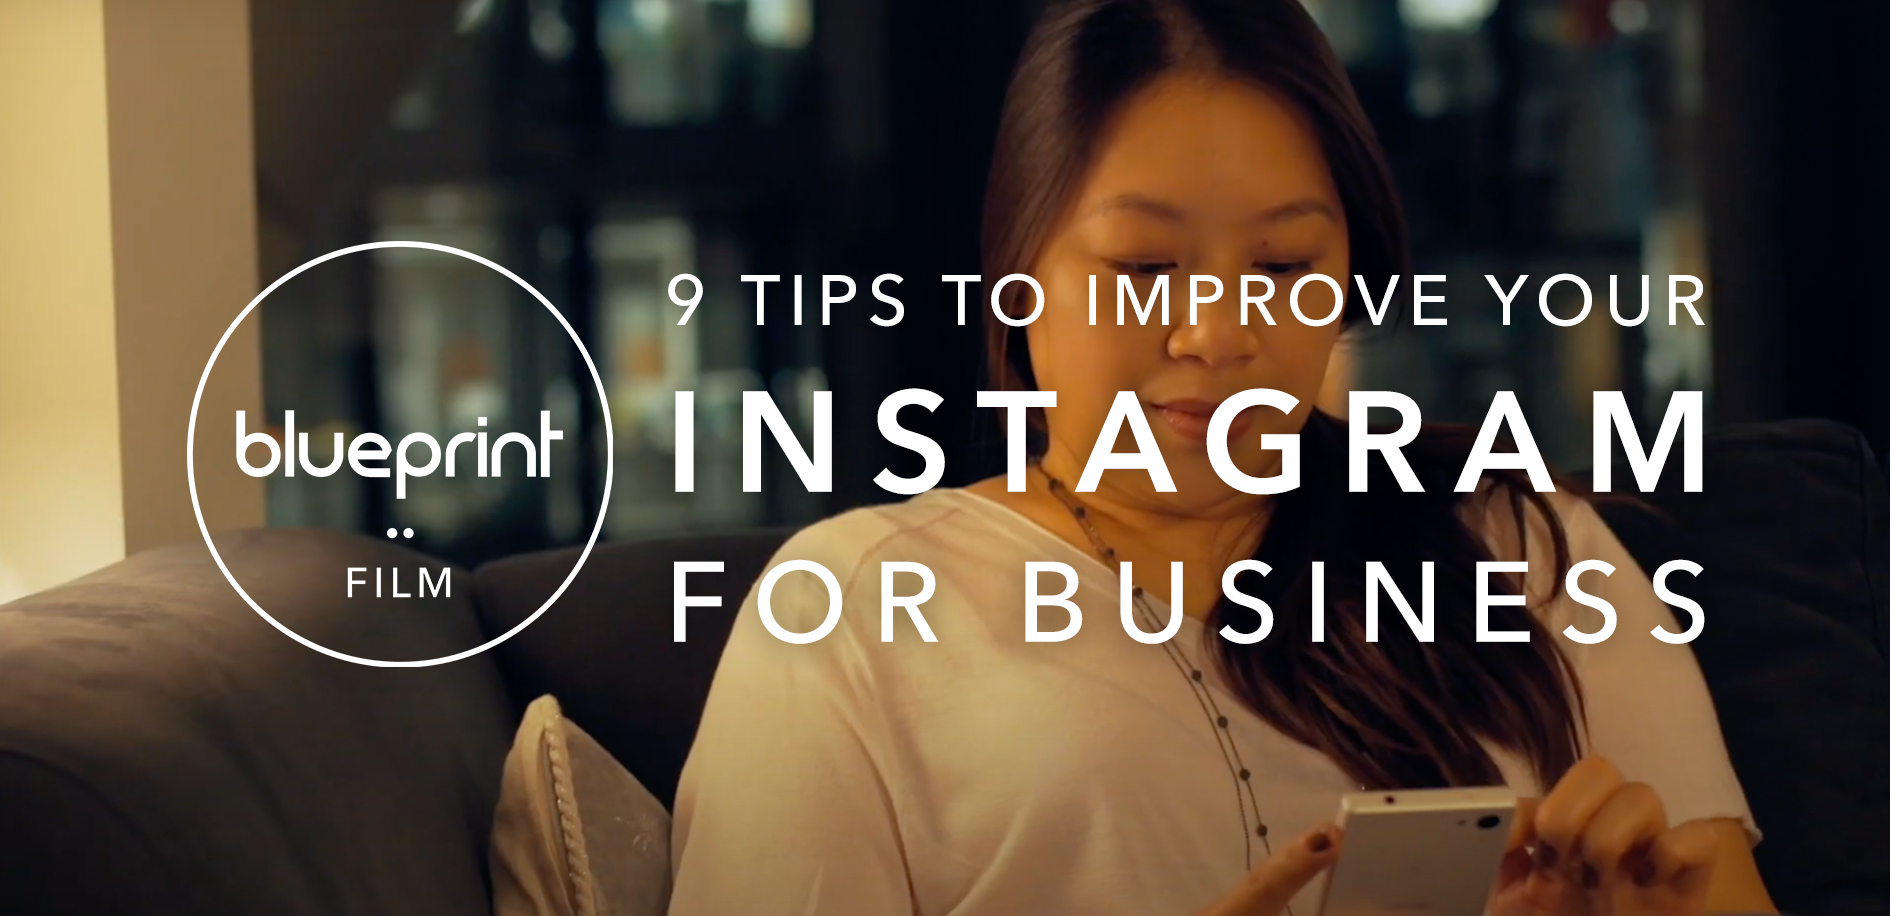 Image of person using smartphone with header text reading 9 Tips to Improve Your Instagram For Business